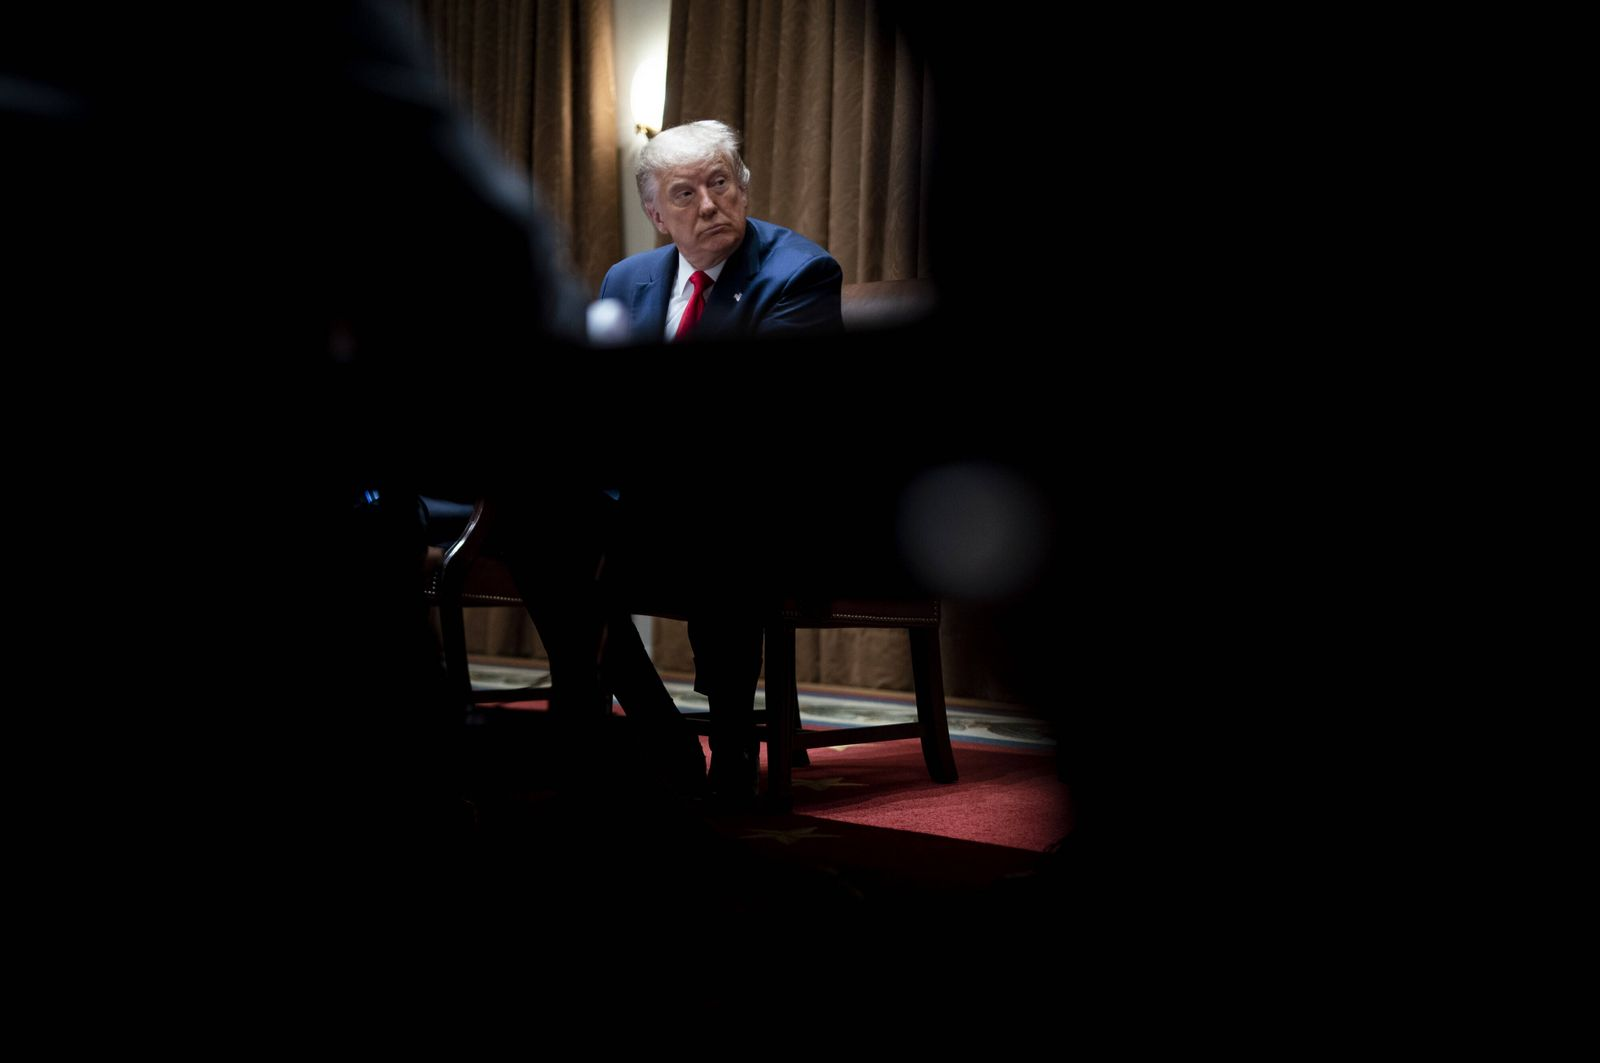 President Donald J. Trump meets with U.S. Tech Workers and signs an Executive Order on Hiring Americans, in the Cabinet